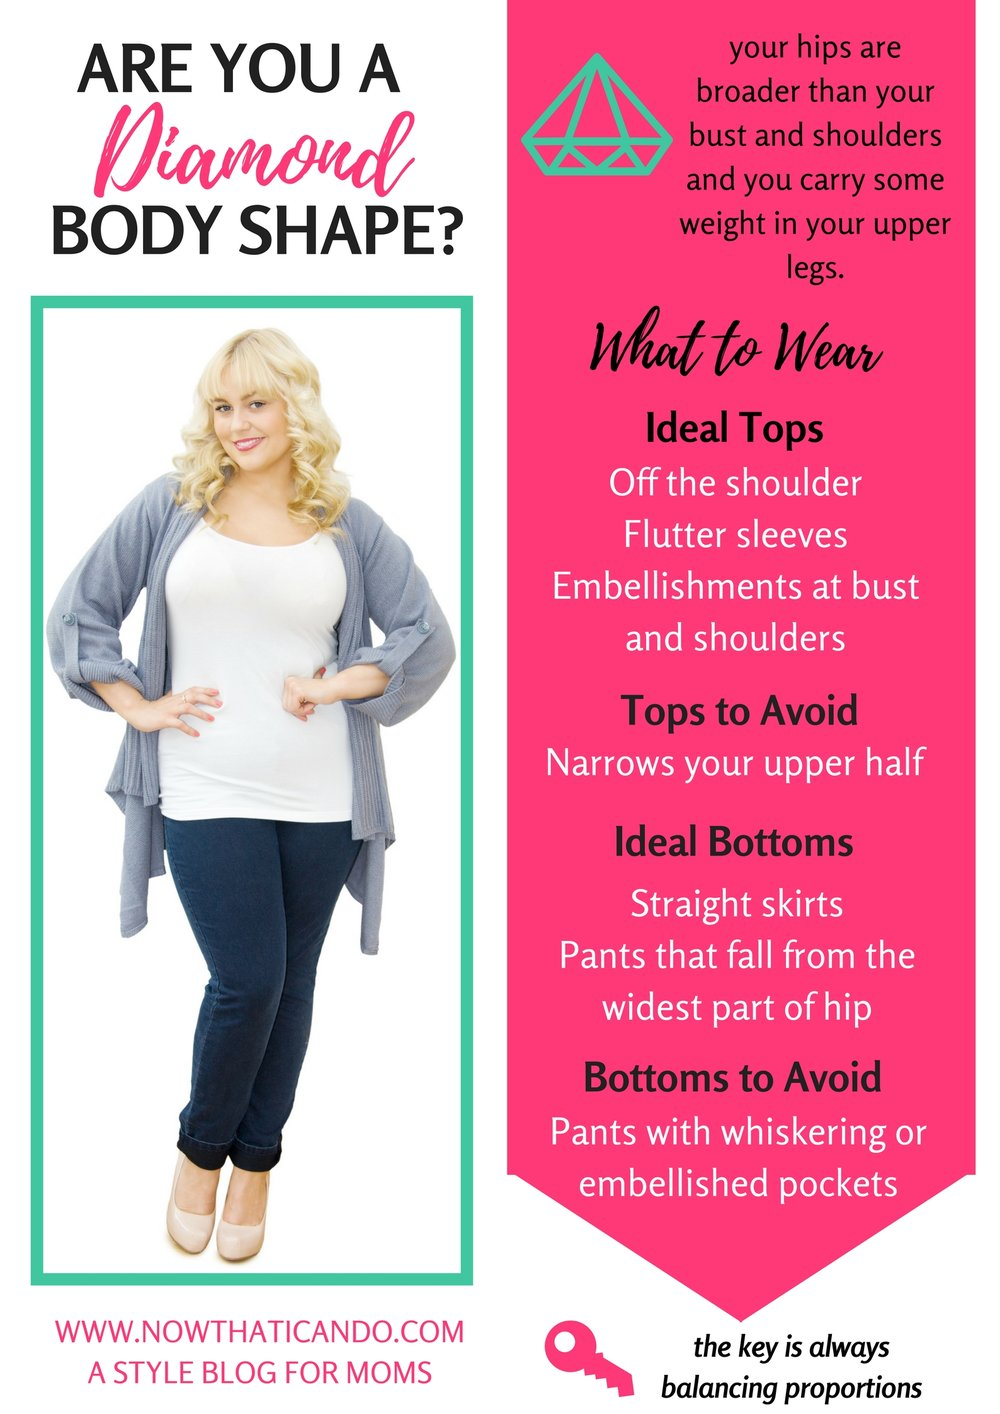 Are you the Diamond Body Shape? (Pin this to for future reference!)